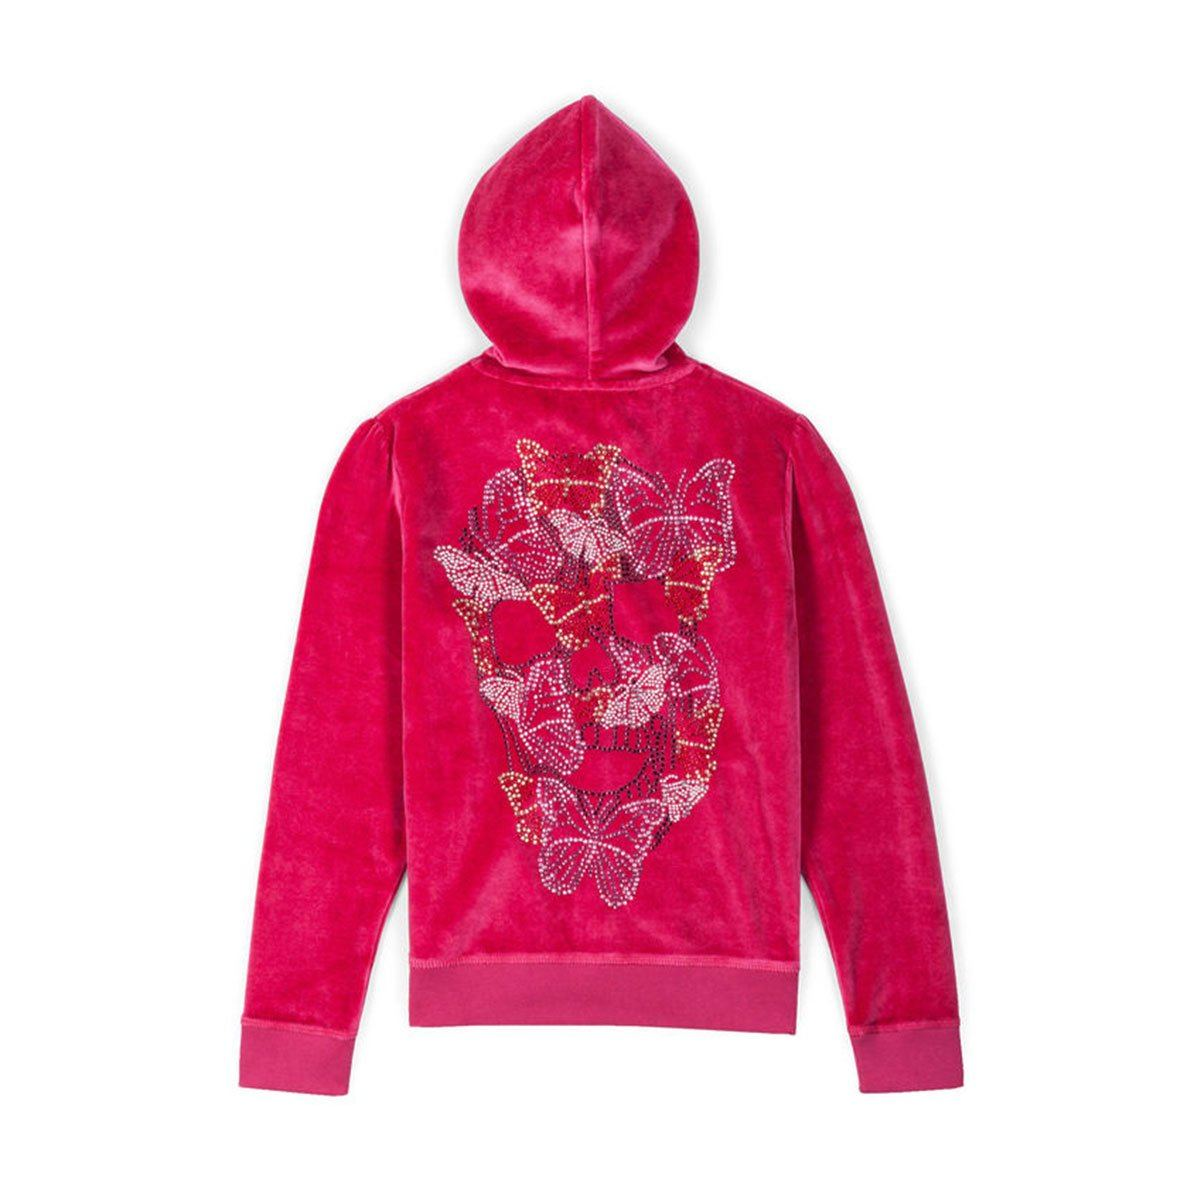 Philipp Plein - Butterfly Sequins Jogging Top For Girls, Red